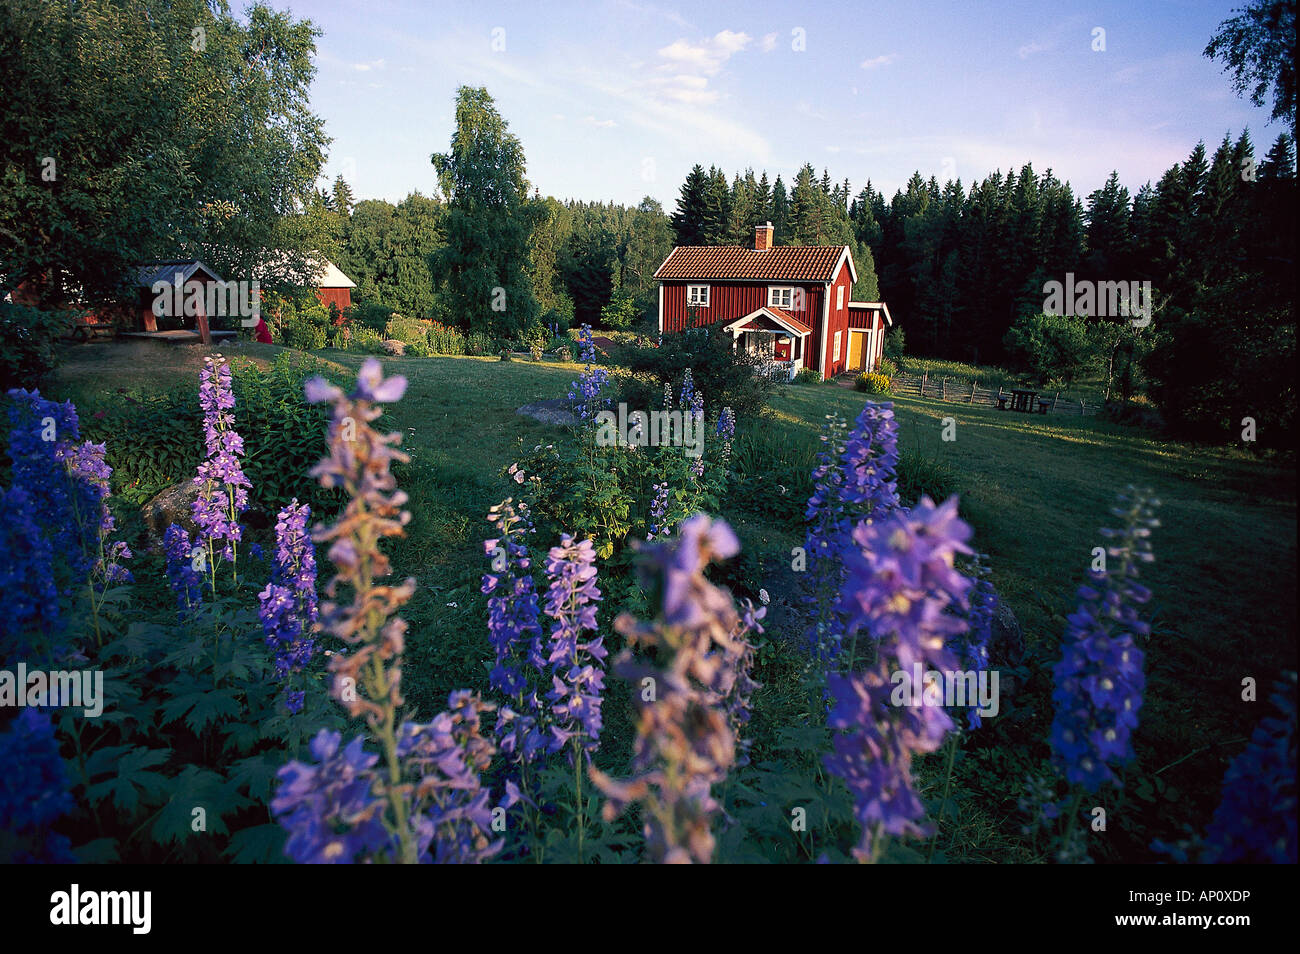 Hof Katthult, film location of Emil i Lonneberga, Gibberyd, Smaland, Sweden - Stock Image